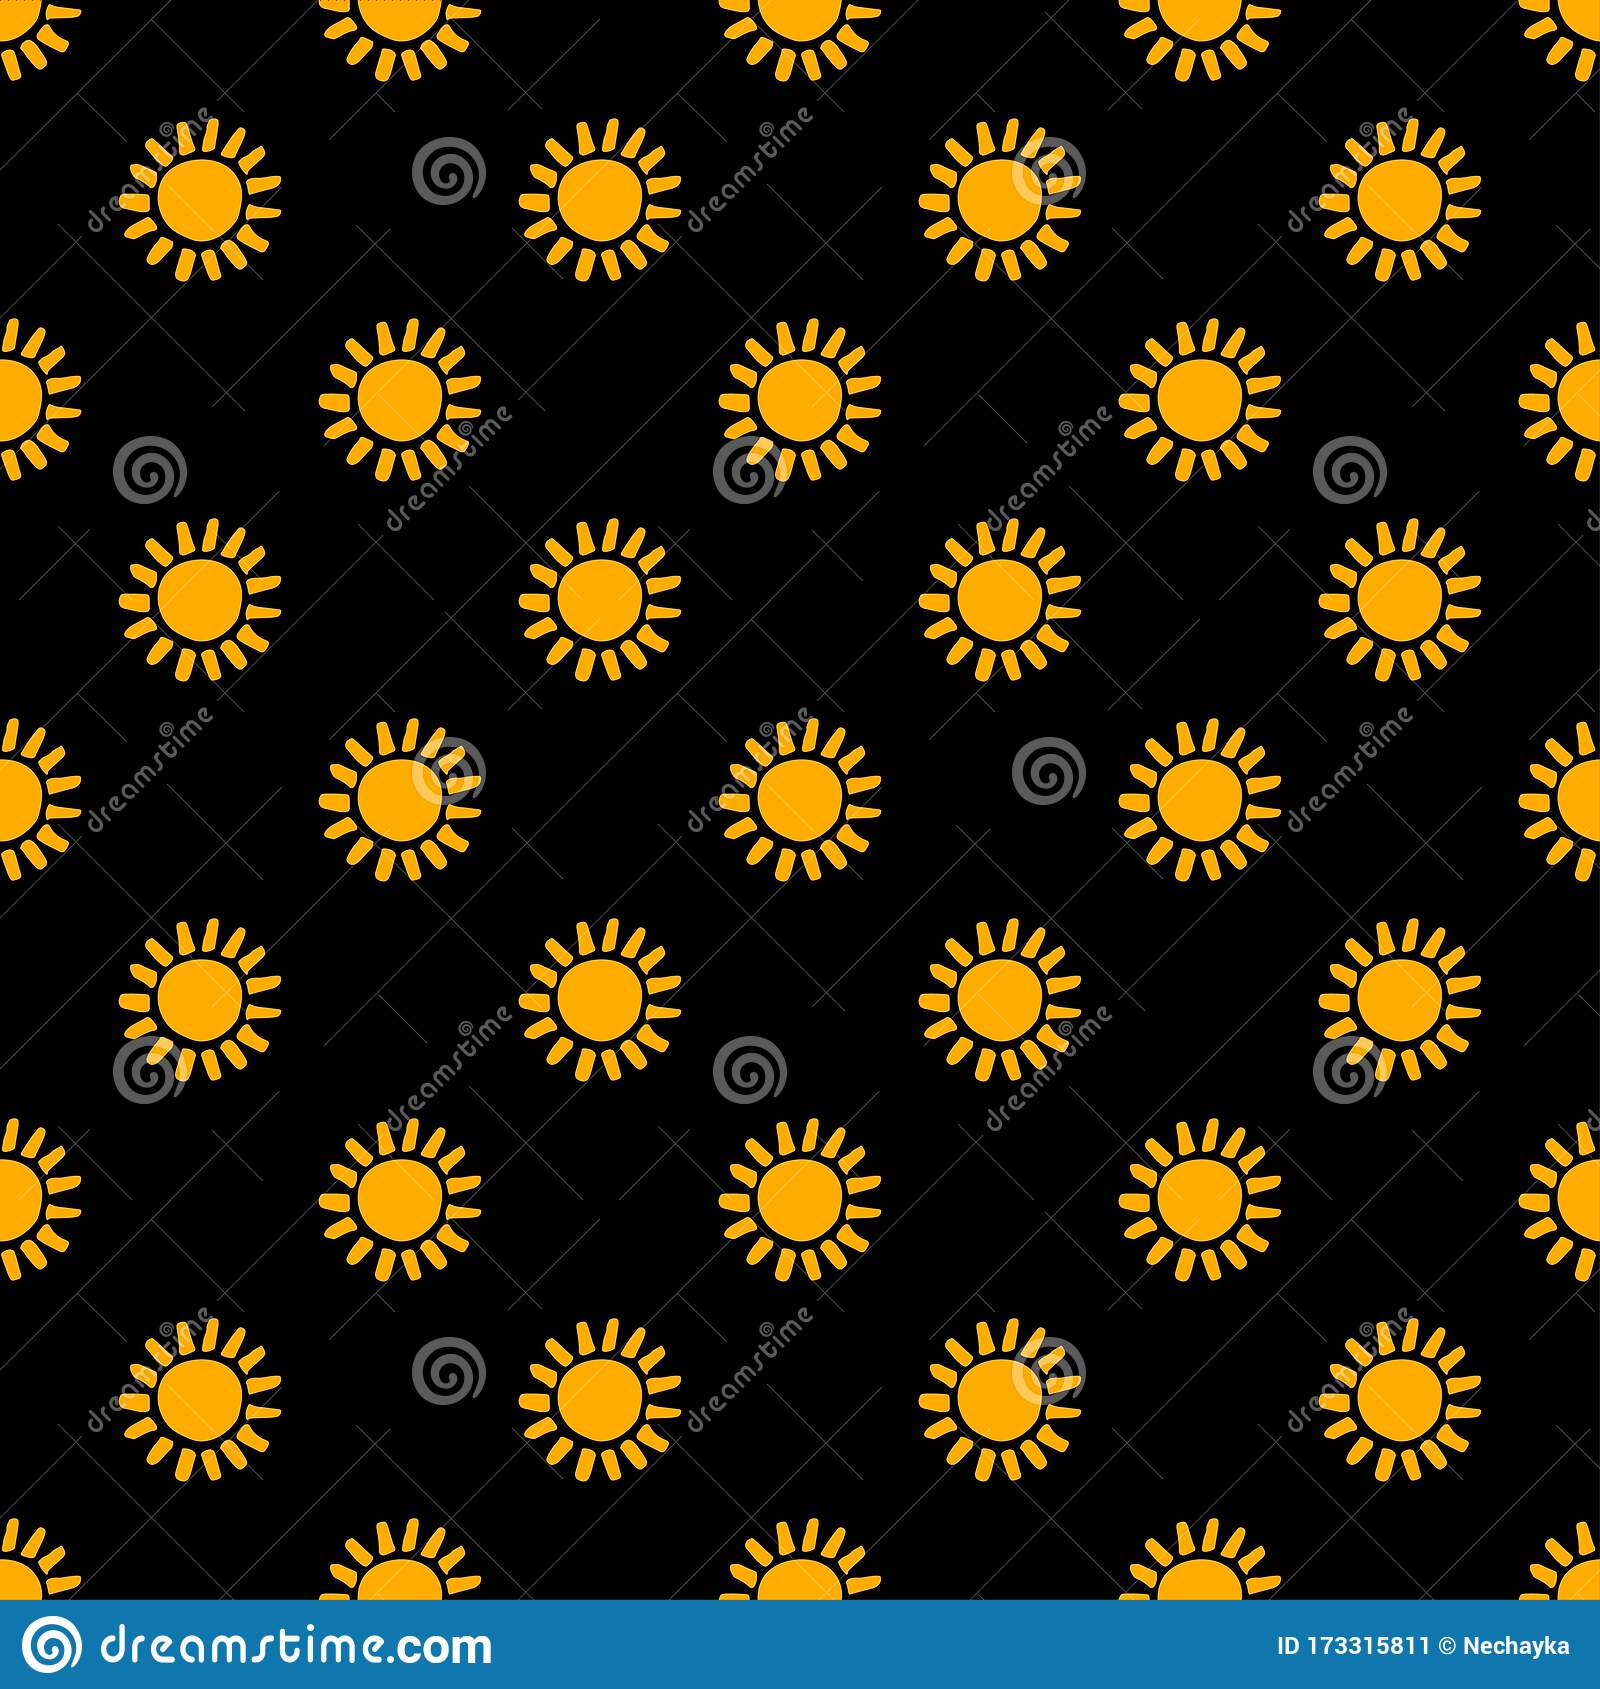 Gold Floral Pattern On Black Background Seamless Flower Design Black Yellow Aesthetic Great For Fabric Scrapbooking Stock Vector Illustration Of Flat Fashion 173315811